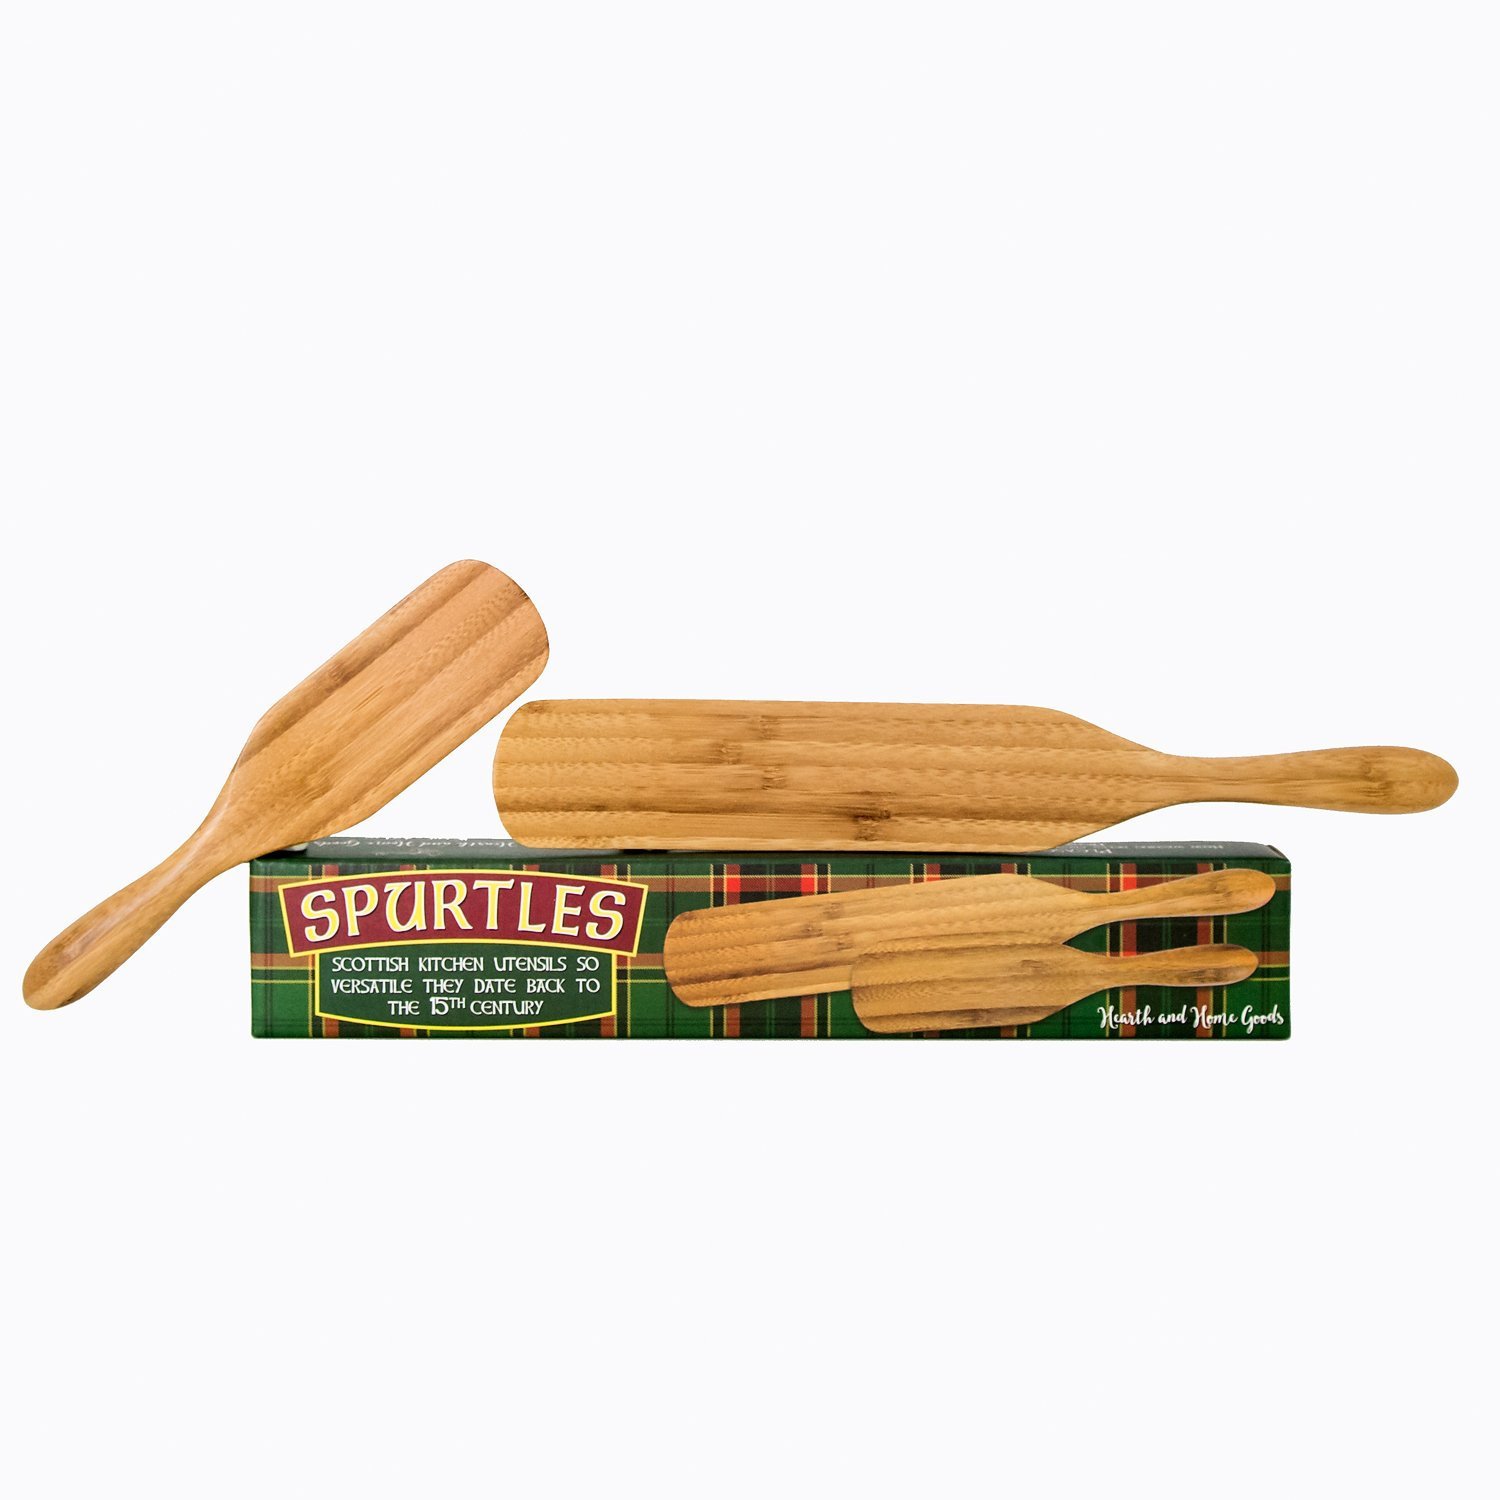 Spurtle Cooking Utensils | 2 Piece Kitchen Tools Set | Heat Resistant, Wooden Bamboo Spatula/Stirring Spoon | Unique, Multifunction Utensil | Safe for Cookware by Hearth and Home Goods